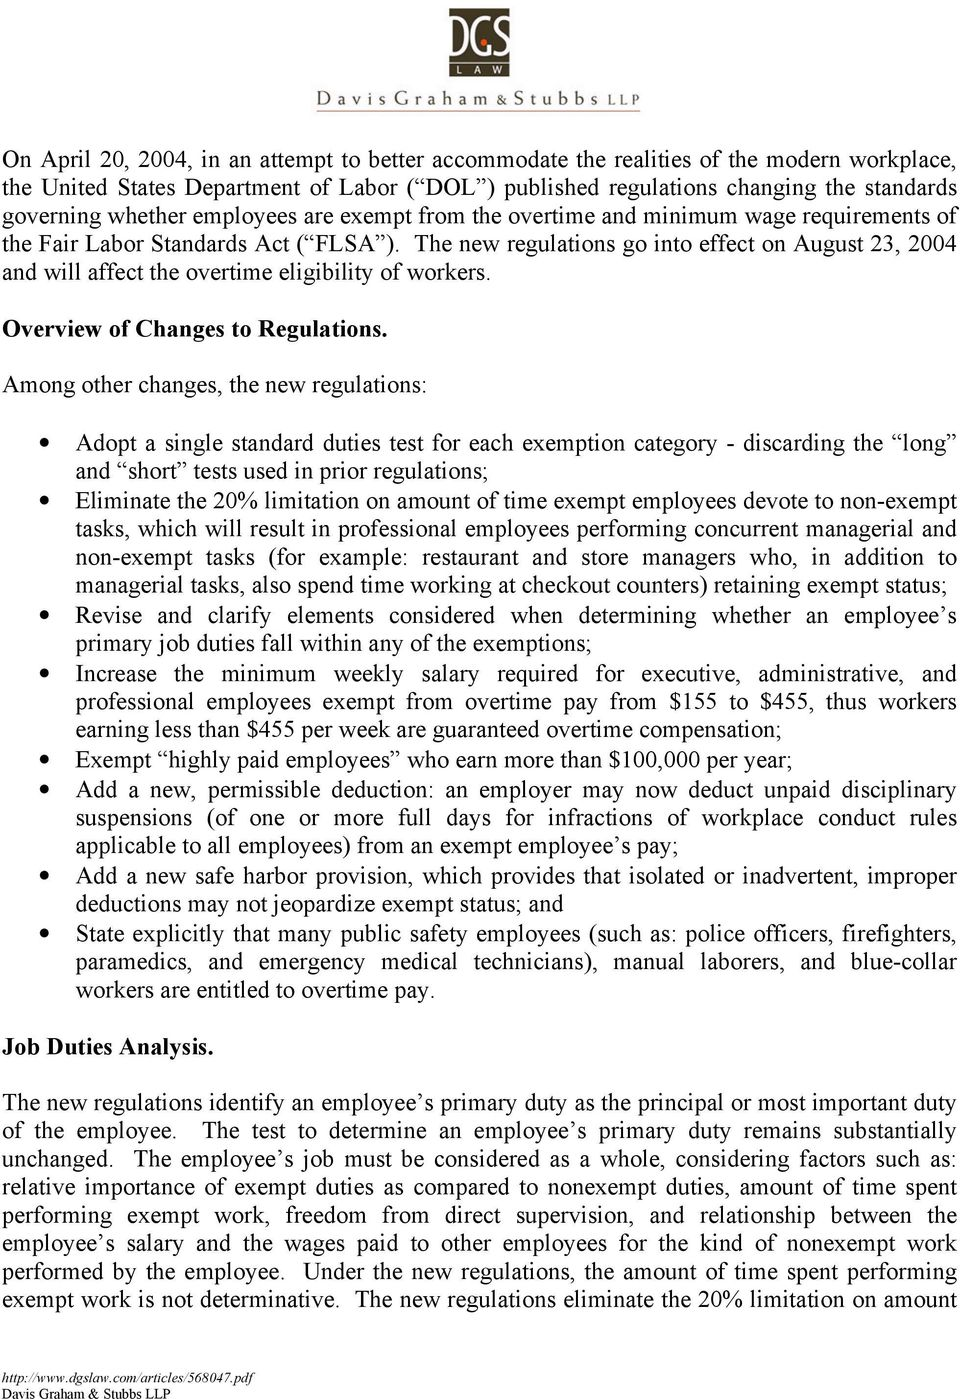 The new regulations go into effect on August 23, 2004 and will affect the overtime eligibility of workers. Overview of Changes to Regulations.